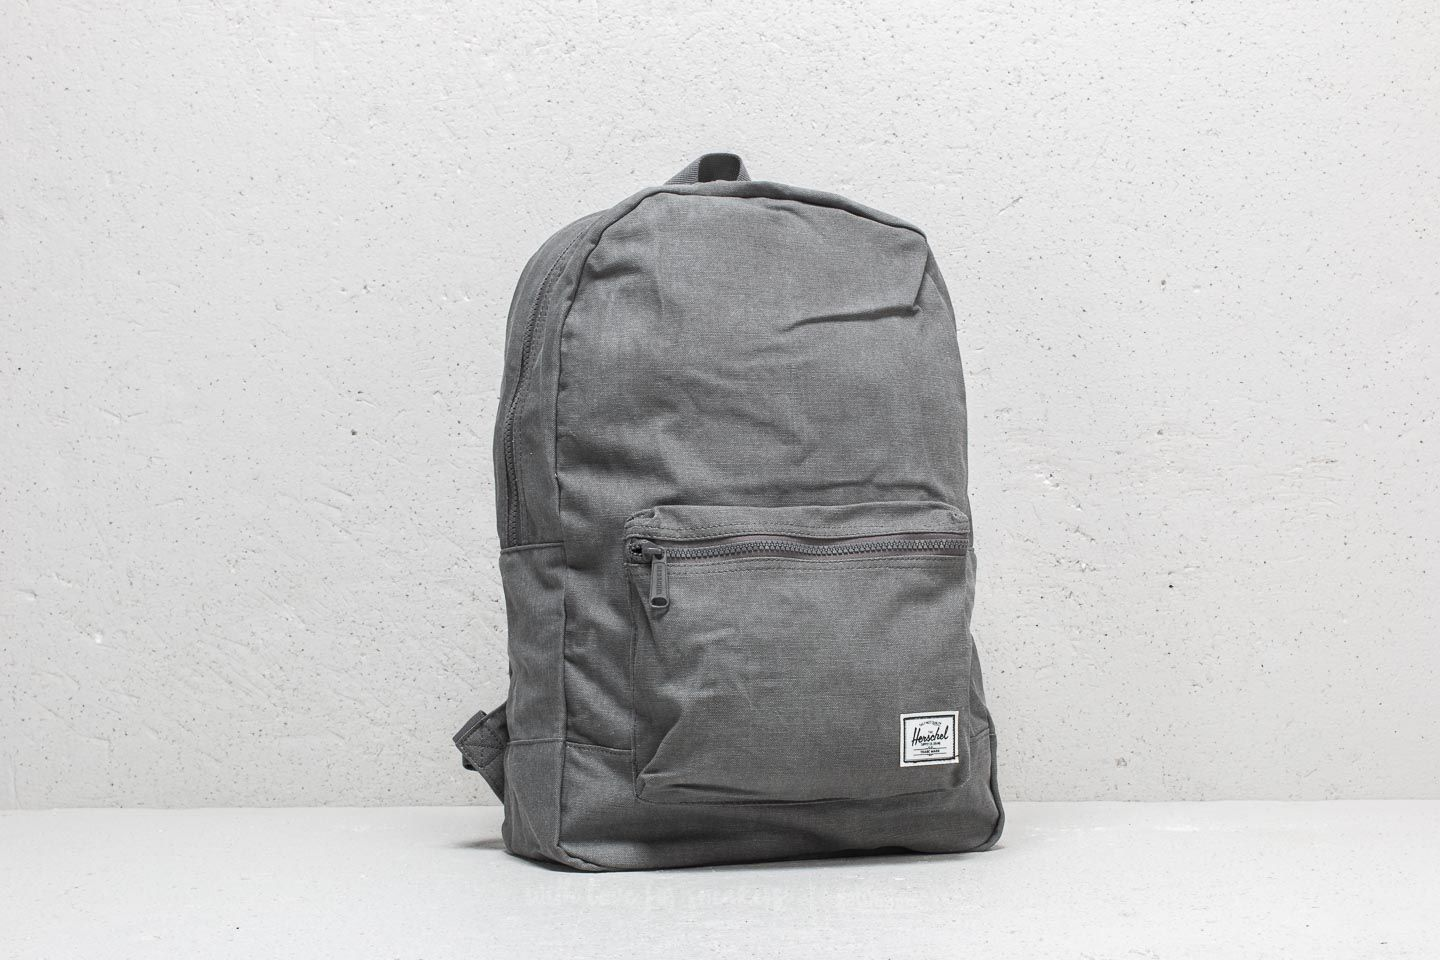 Herschel Supply Co. Daypack Backpack Smoked Pearl  0a4f5fb3f49c4